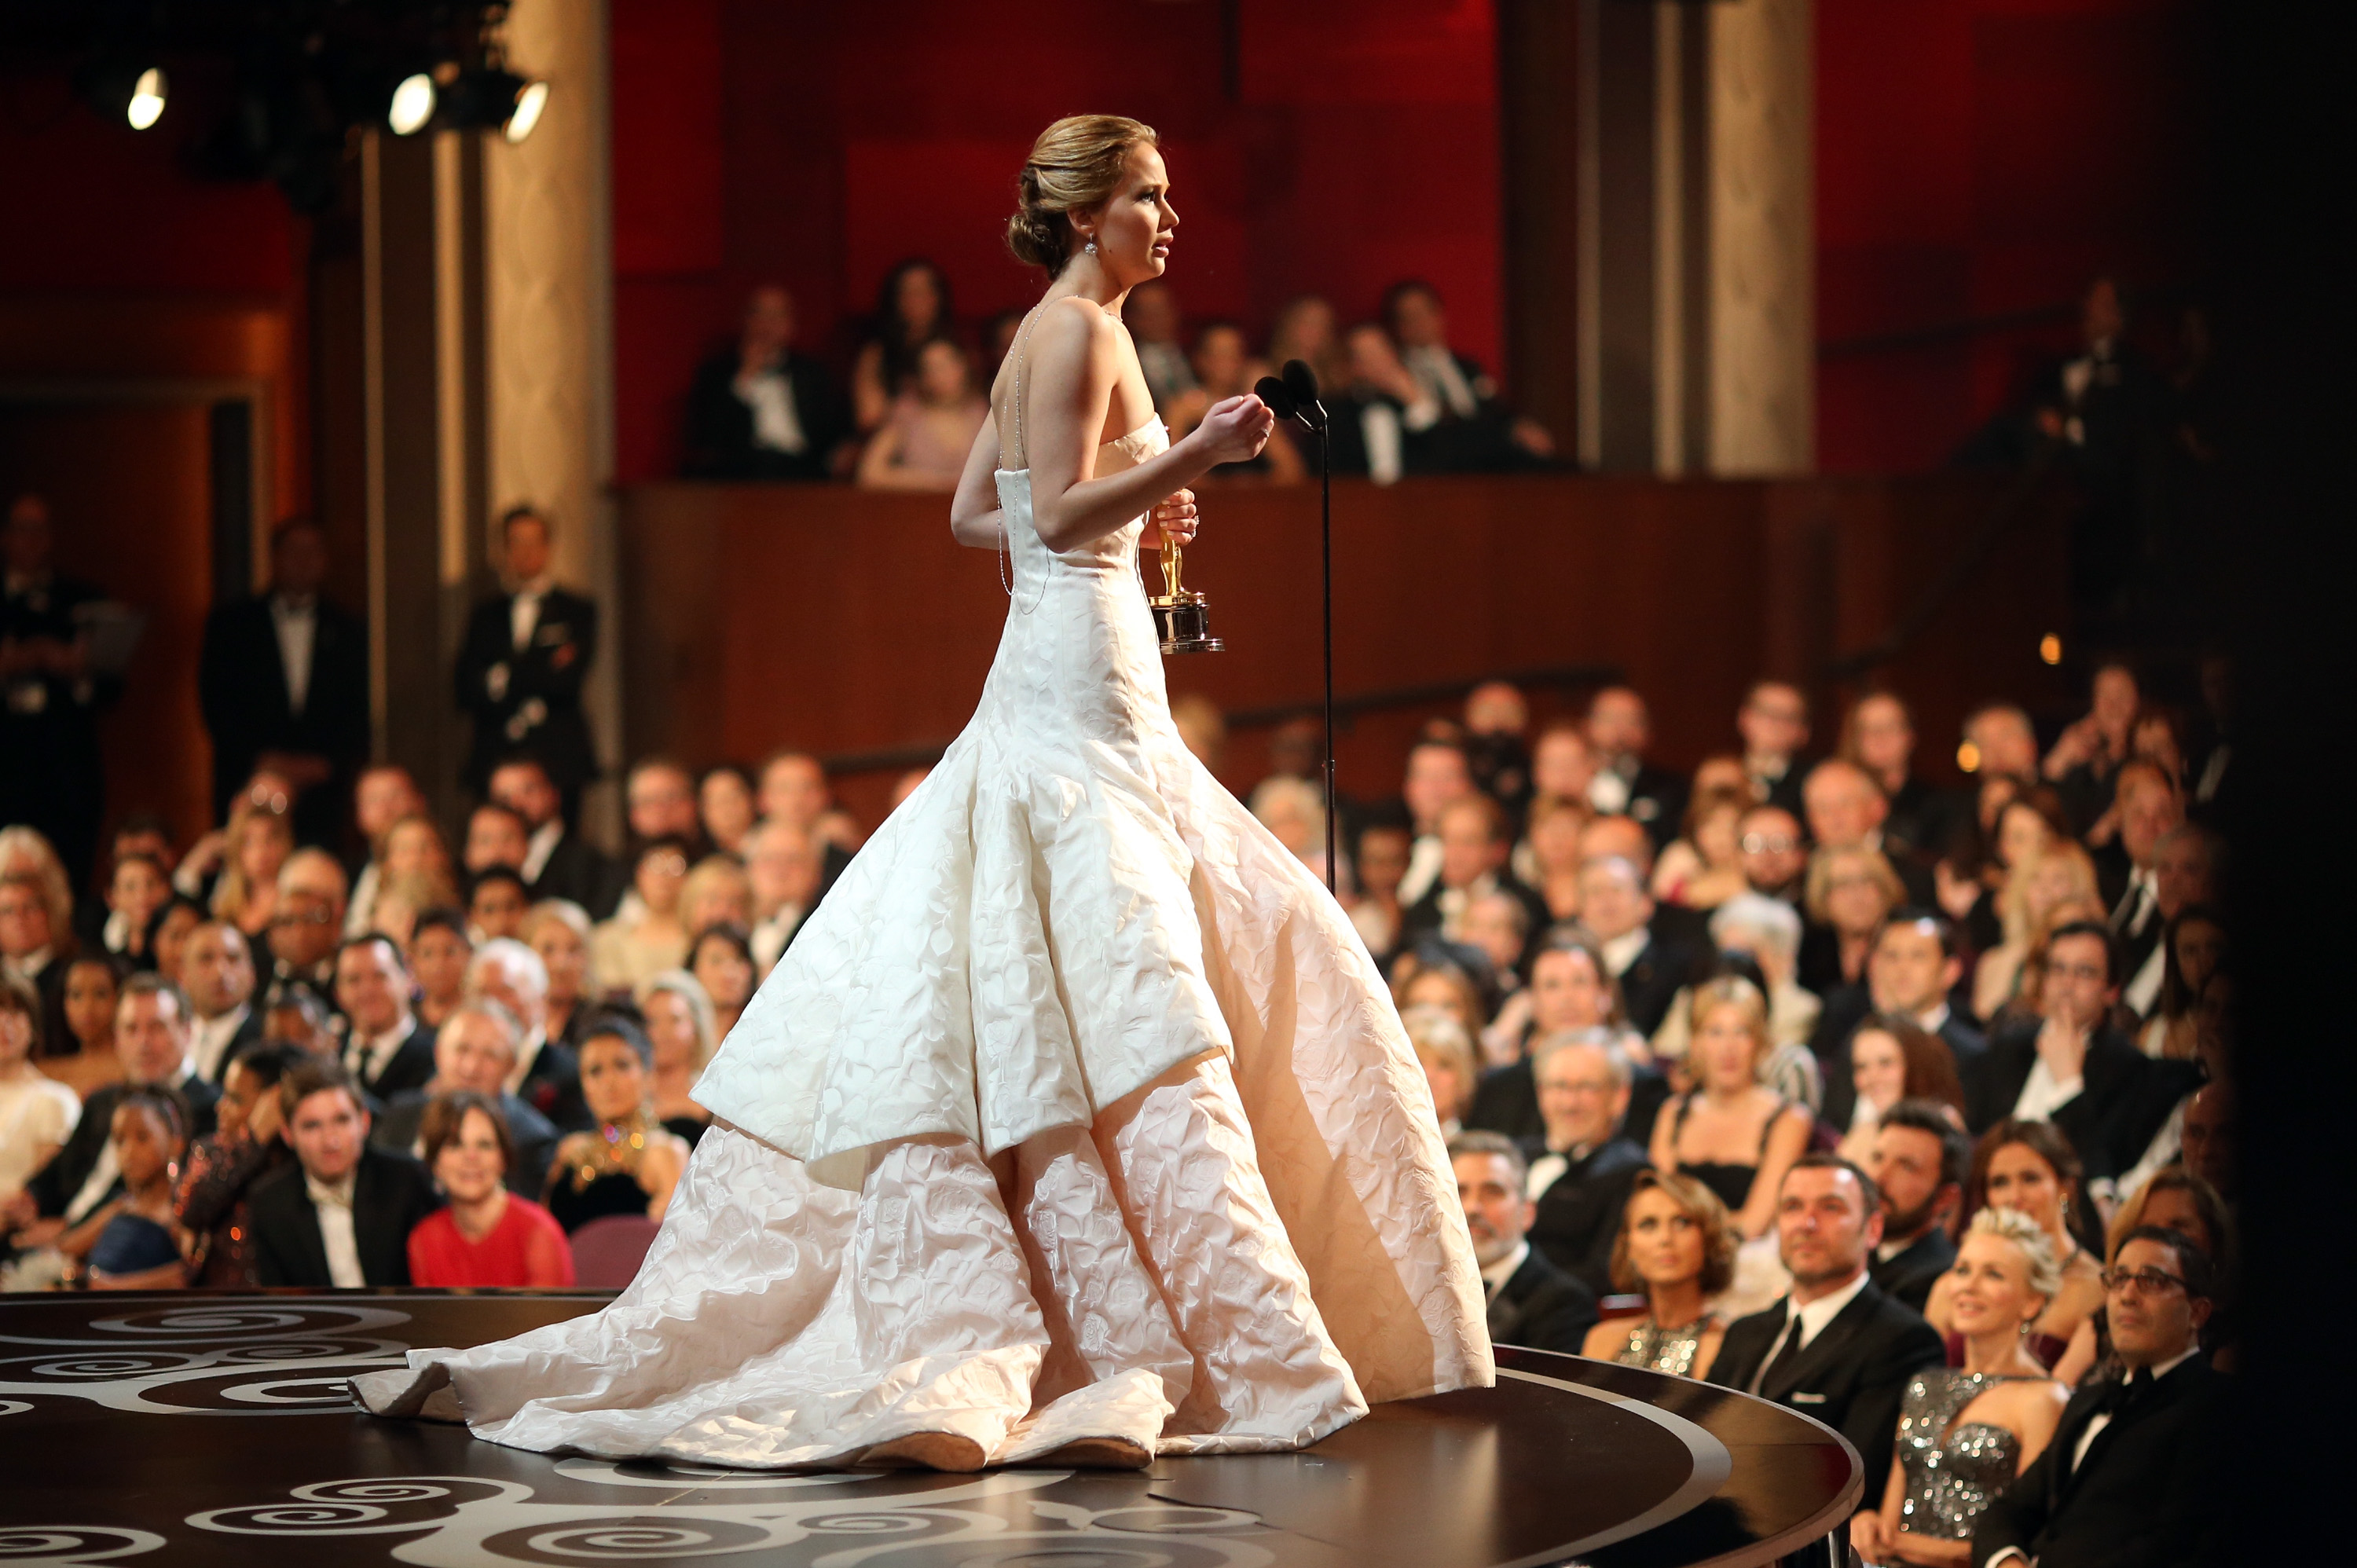 Jennifer Lawrence looked stunning in Dior as she accepted her best actress statue on stage.